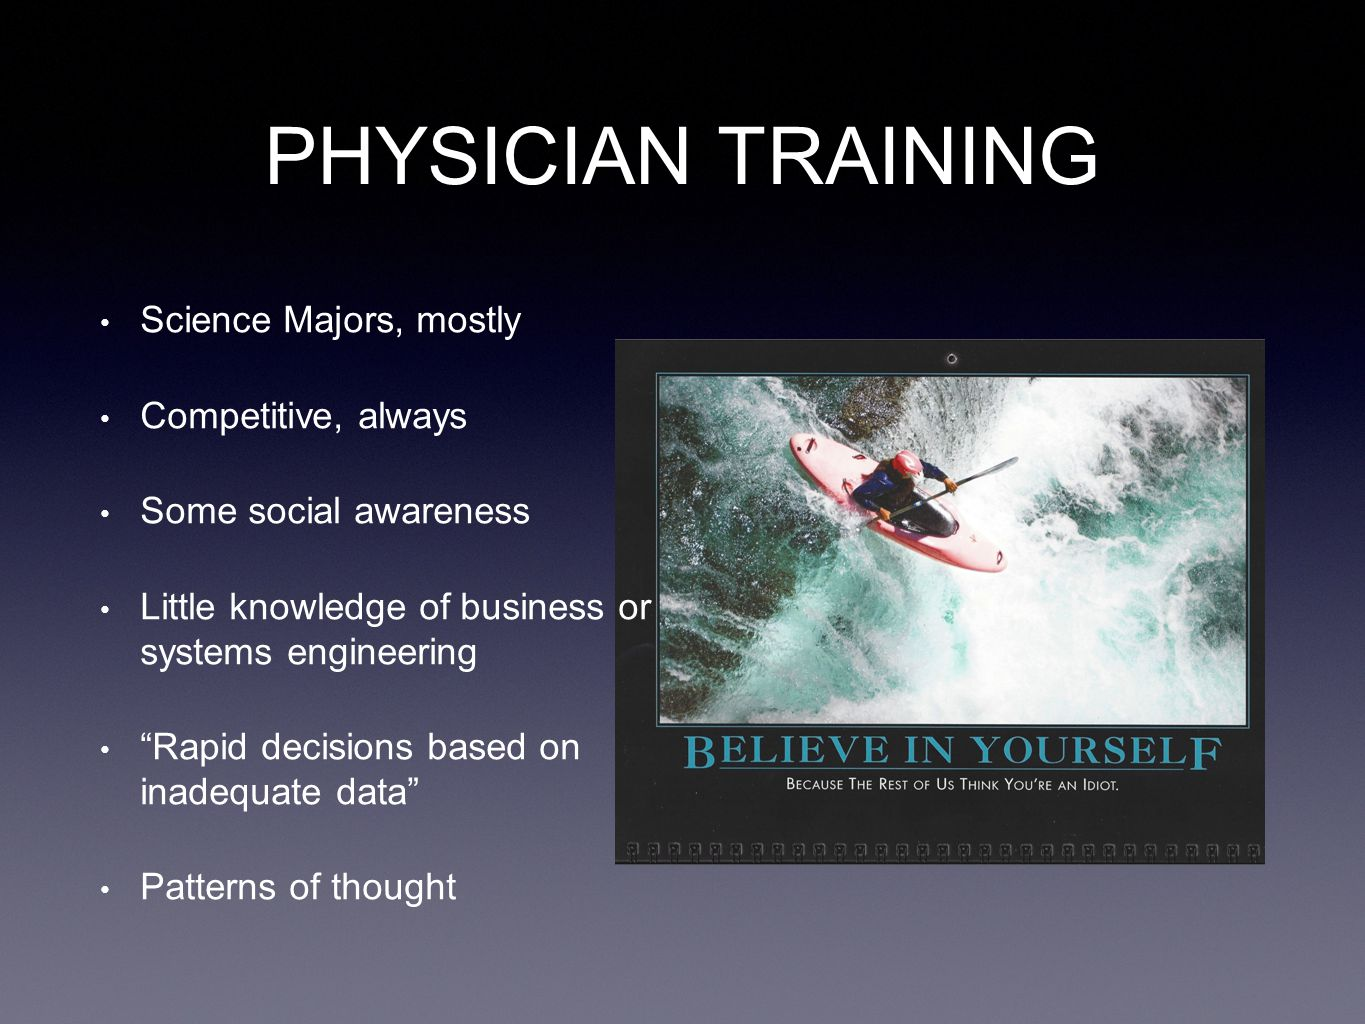 PHYSICIAN TRAINING Science Majors, mostly Competitive, always Some social awareness Little knowledge of business or systems engineering Rapid decisions based on inadequate data Patterns of thought